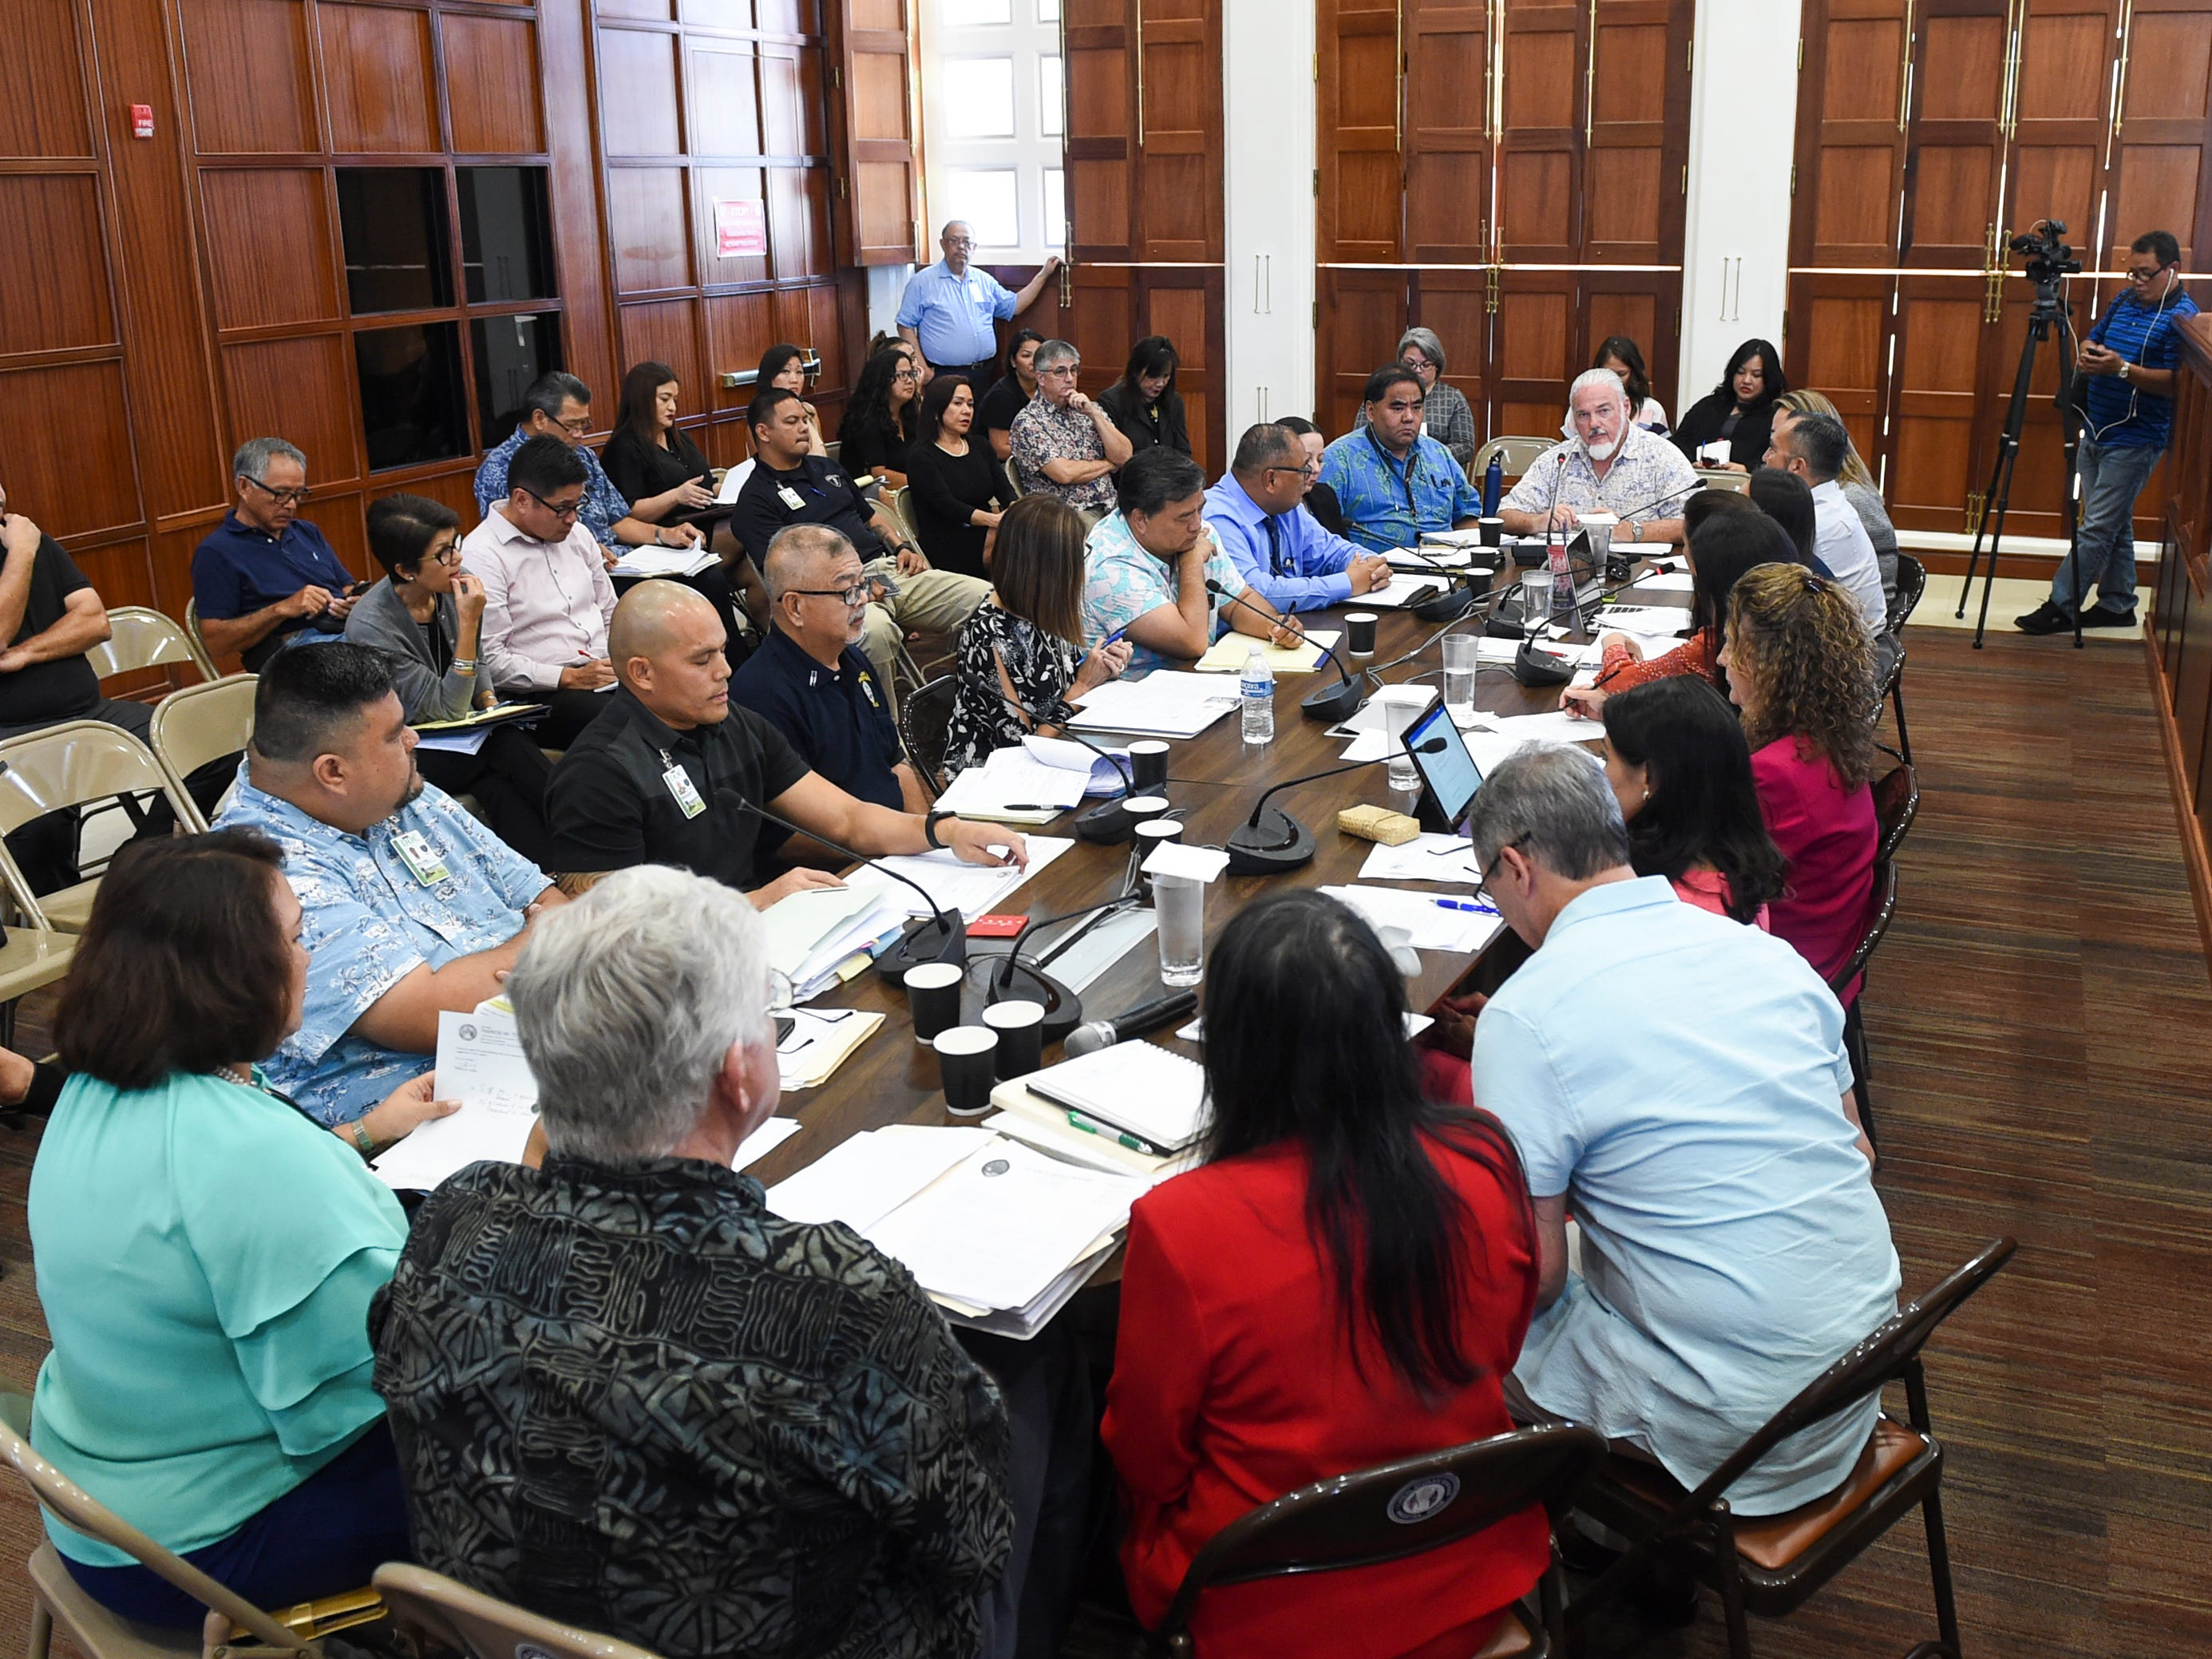 Members of the 35th Guam Legislature meet with officials from the Judiciary, Attorney General, Public Defender, Parole Corrections, and Behaviorial Health agencies for a roundtable discussion at the Guam Congress Building in Hagåtña on May 6, 2019.